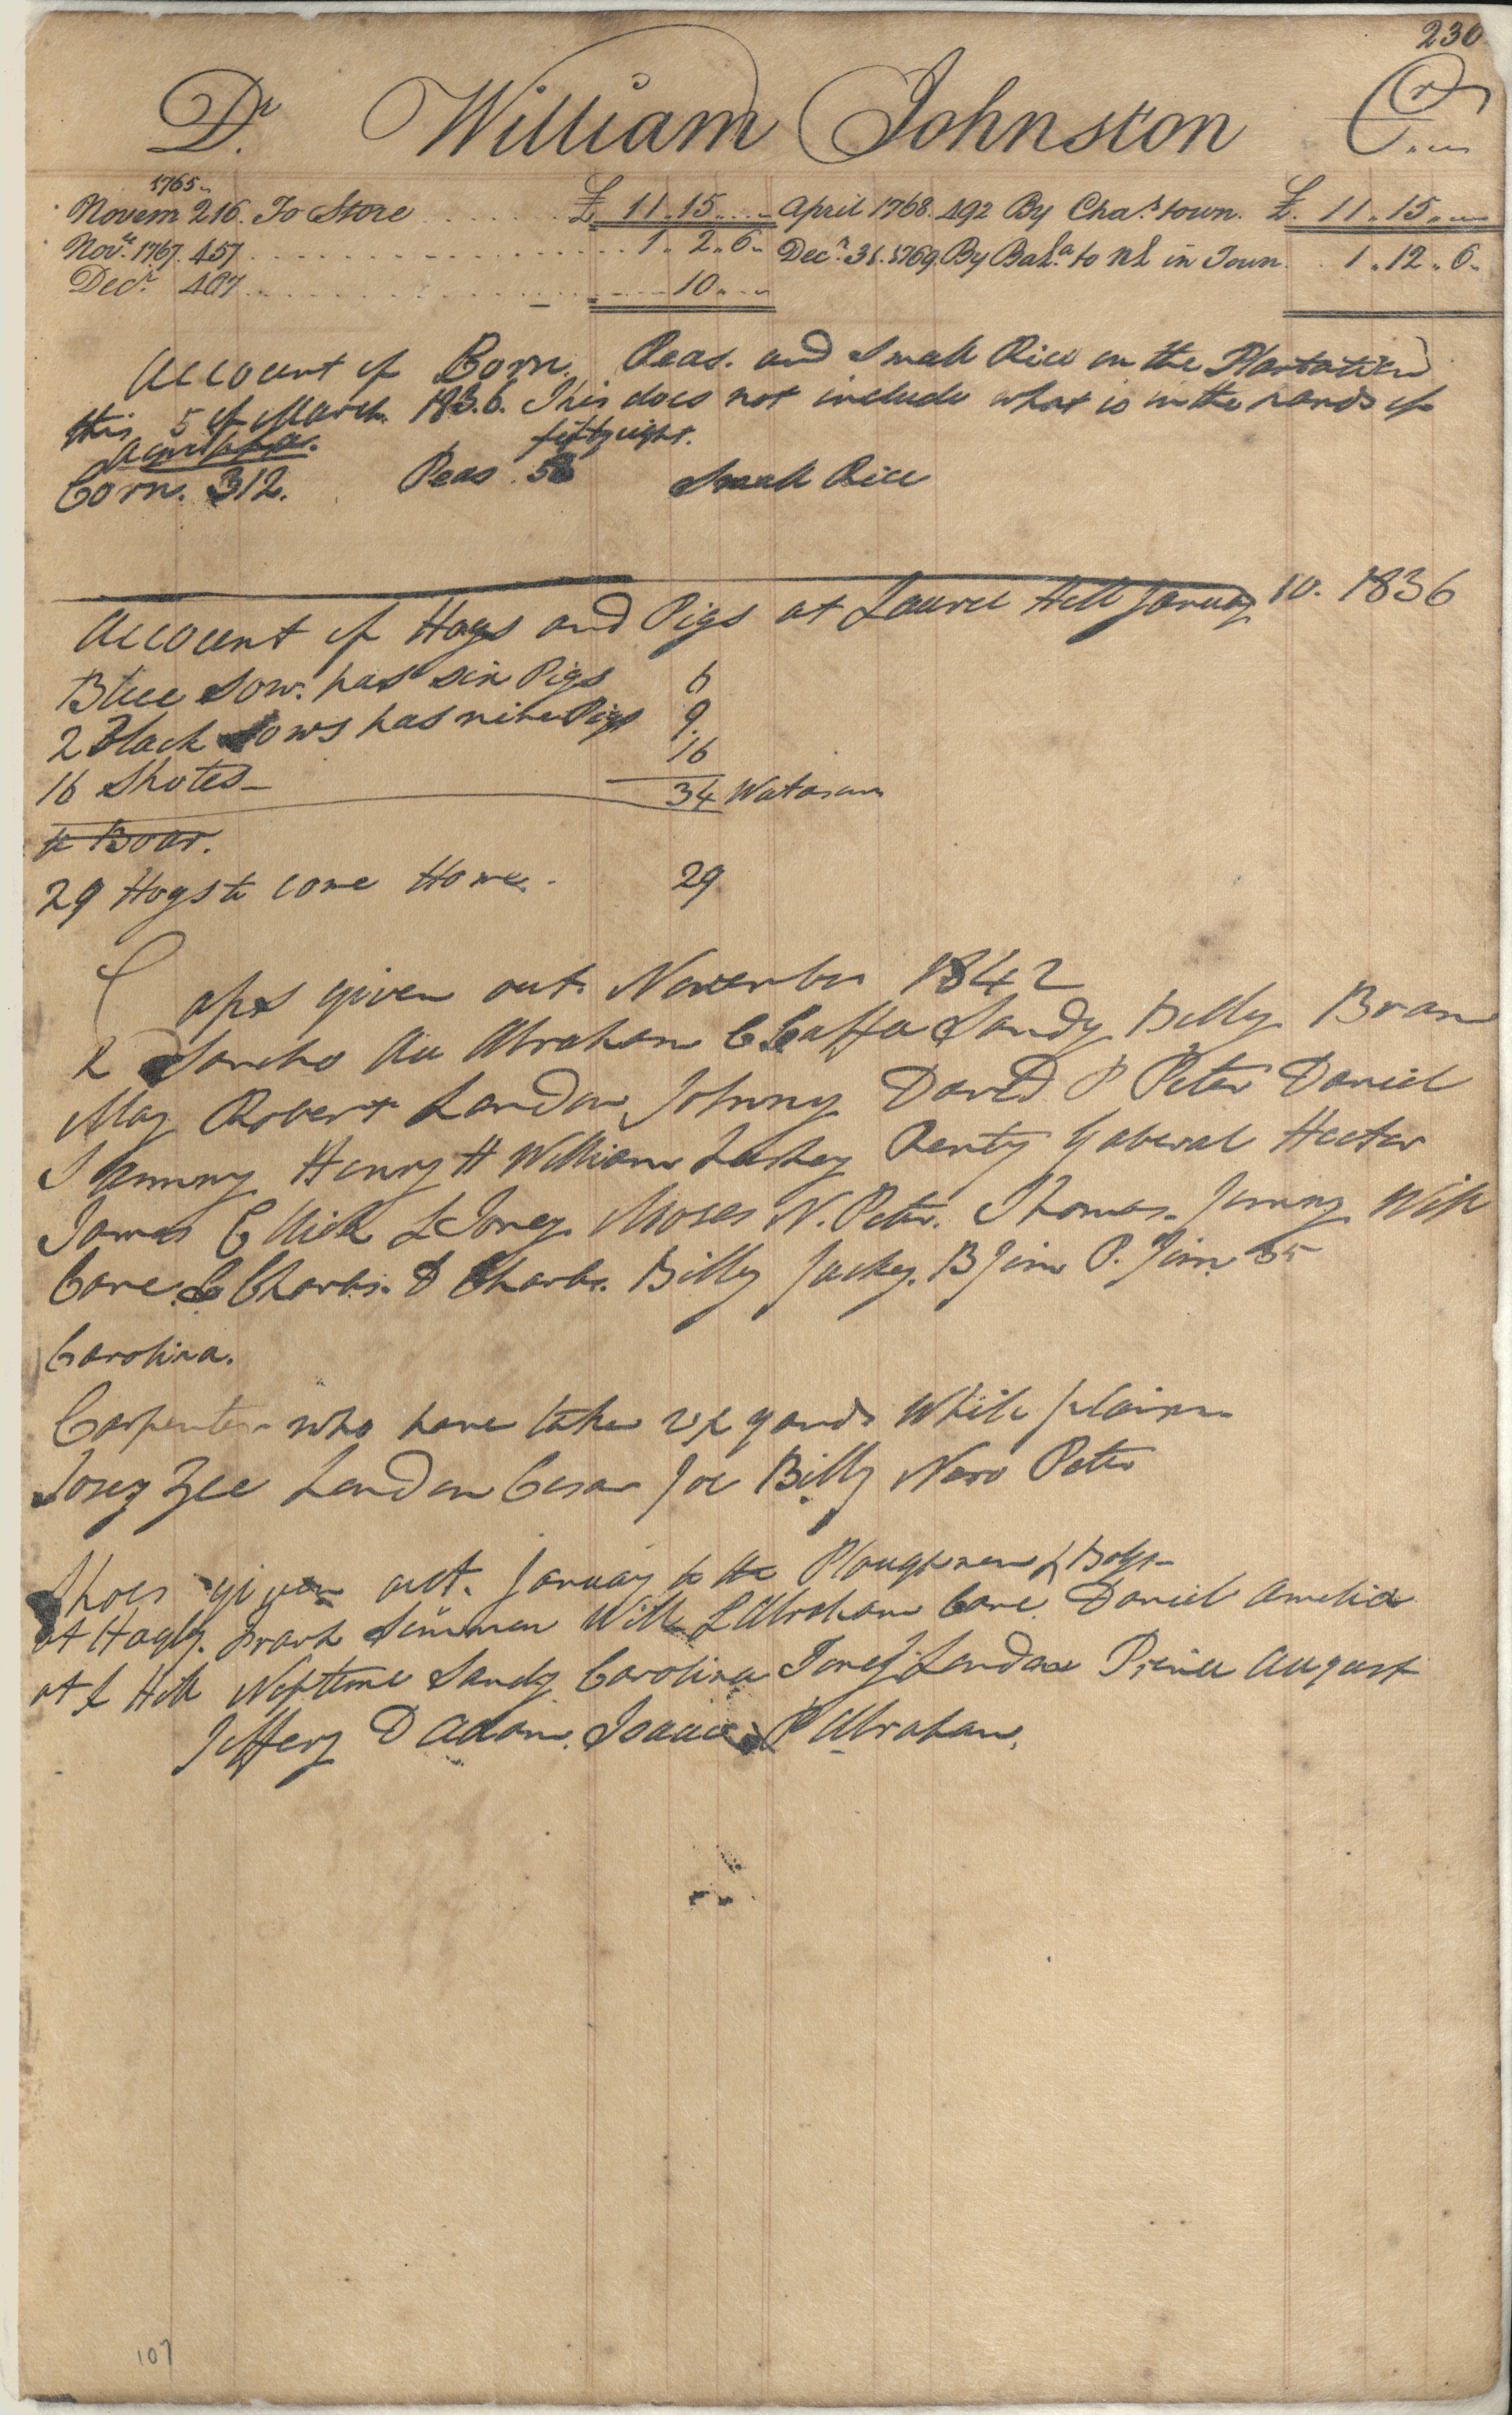 Plowden Weston's Business Ledger, page 236